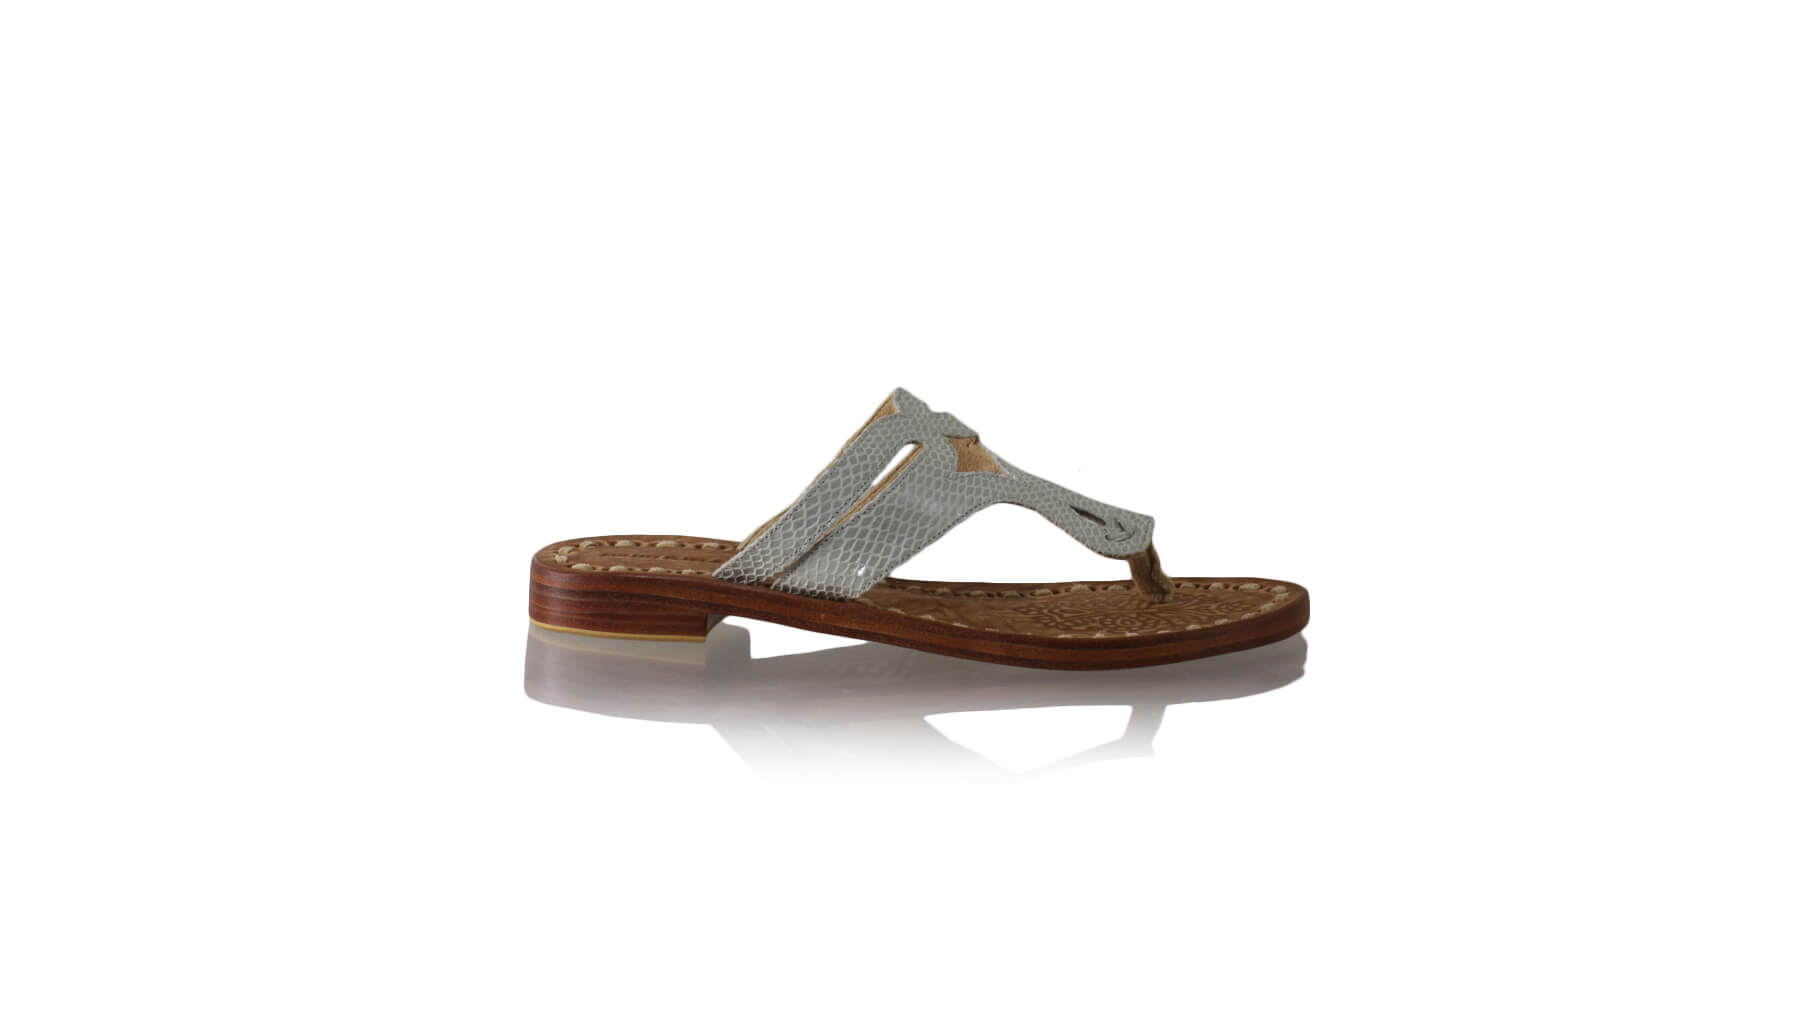 Leather-shoes-Arrah 20mm Flat - Grey Snake Print-sandals flat-NILUH DJELANTIK-NILUH DJELANTIK